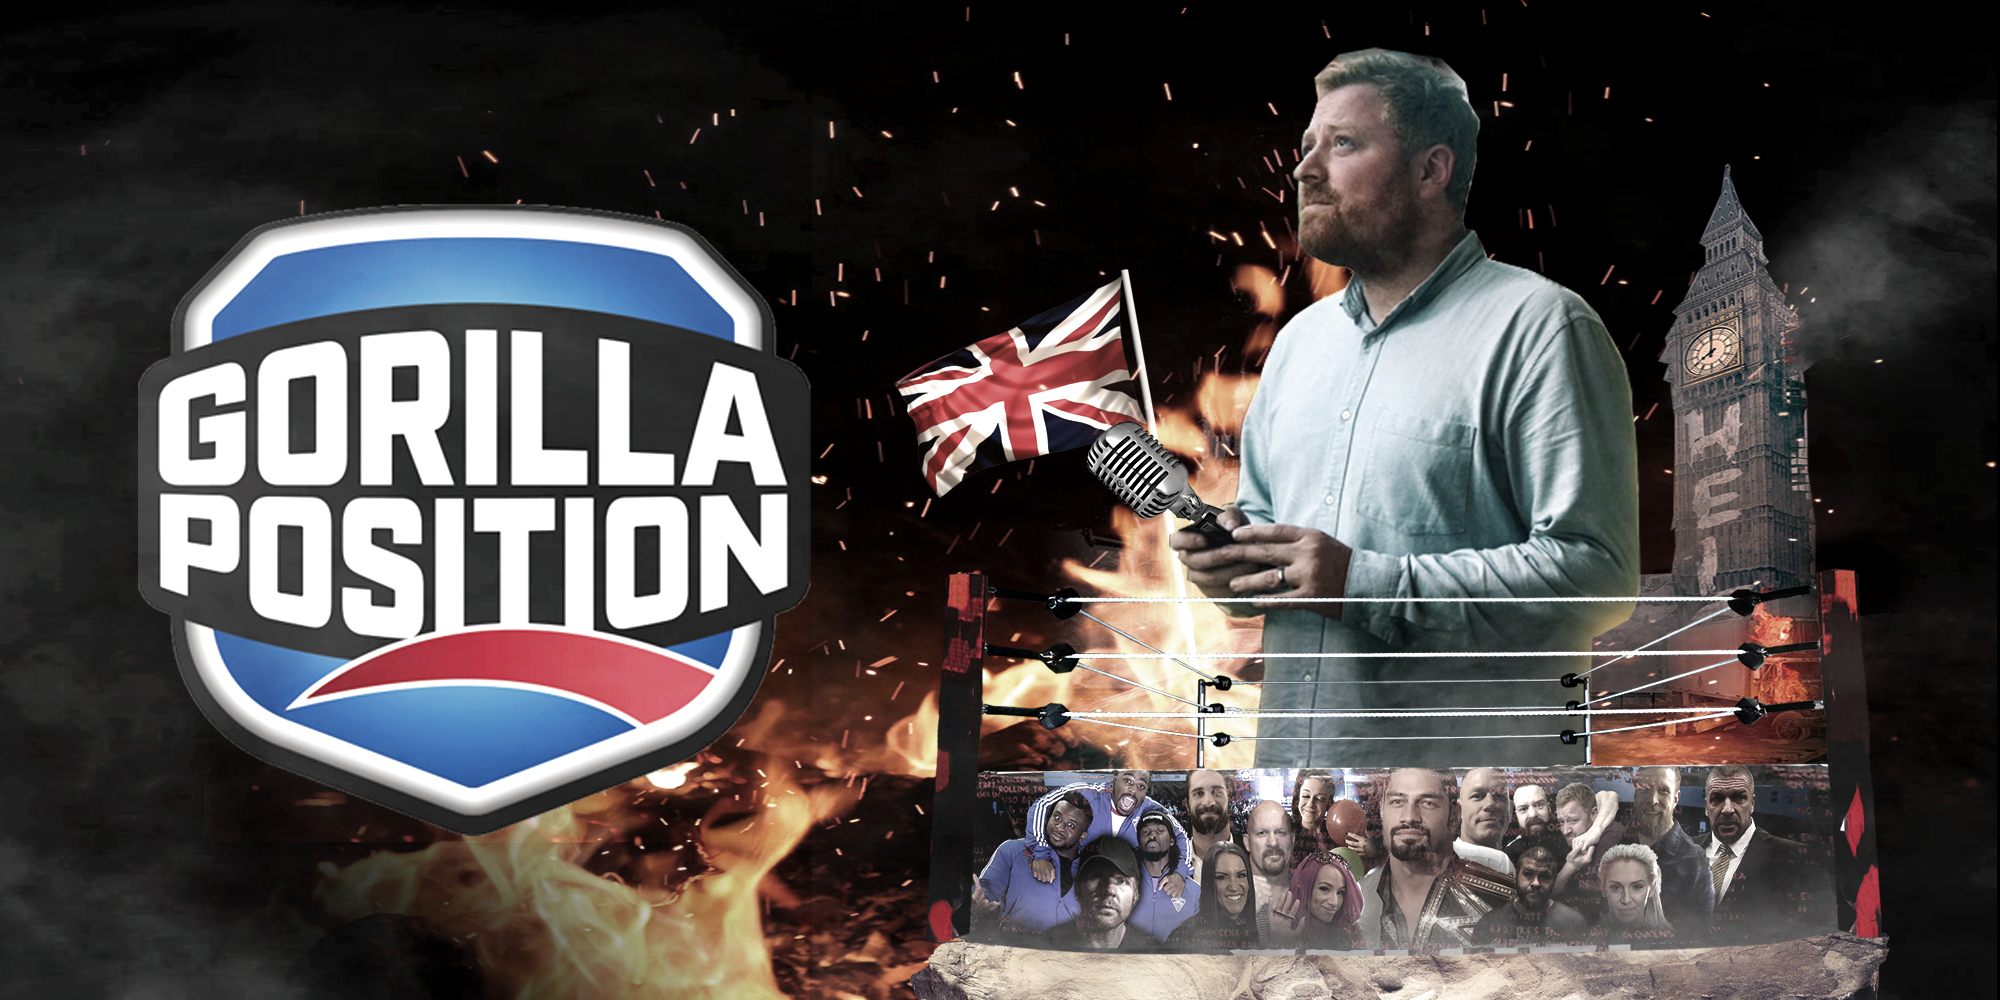 Host of Gorilla Position, James Delow returns to the WWE Gorilla Position mic for another season